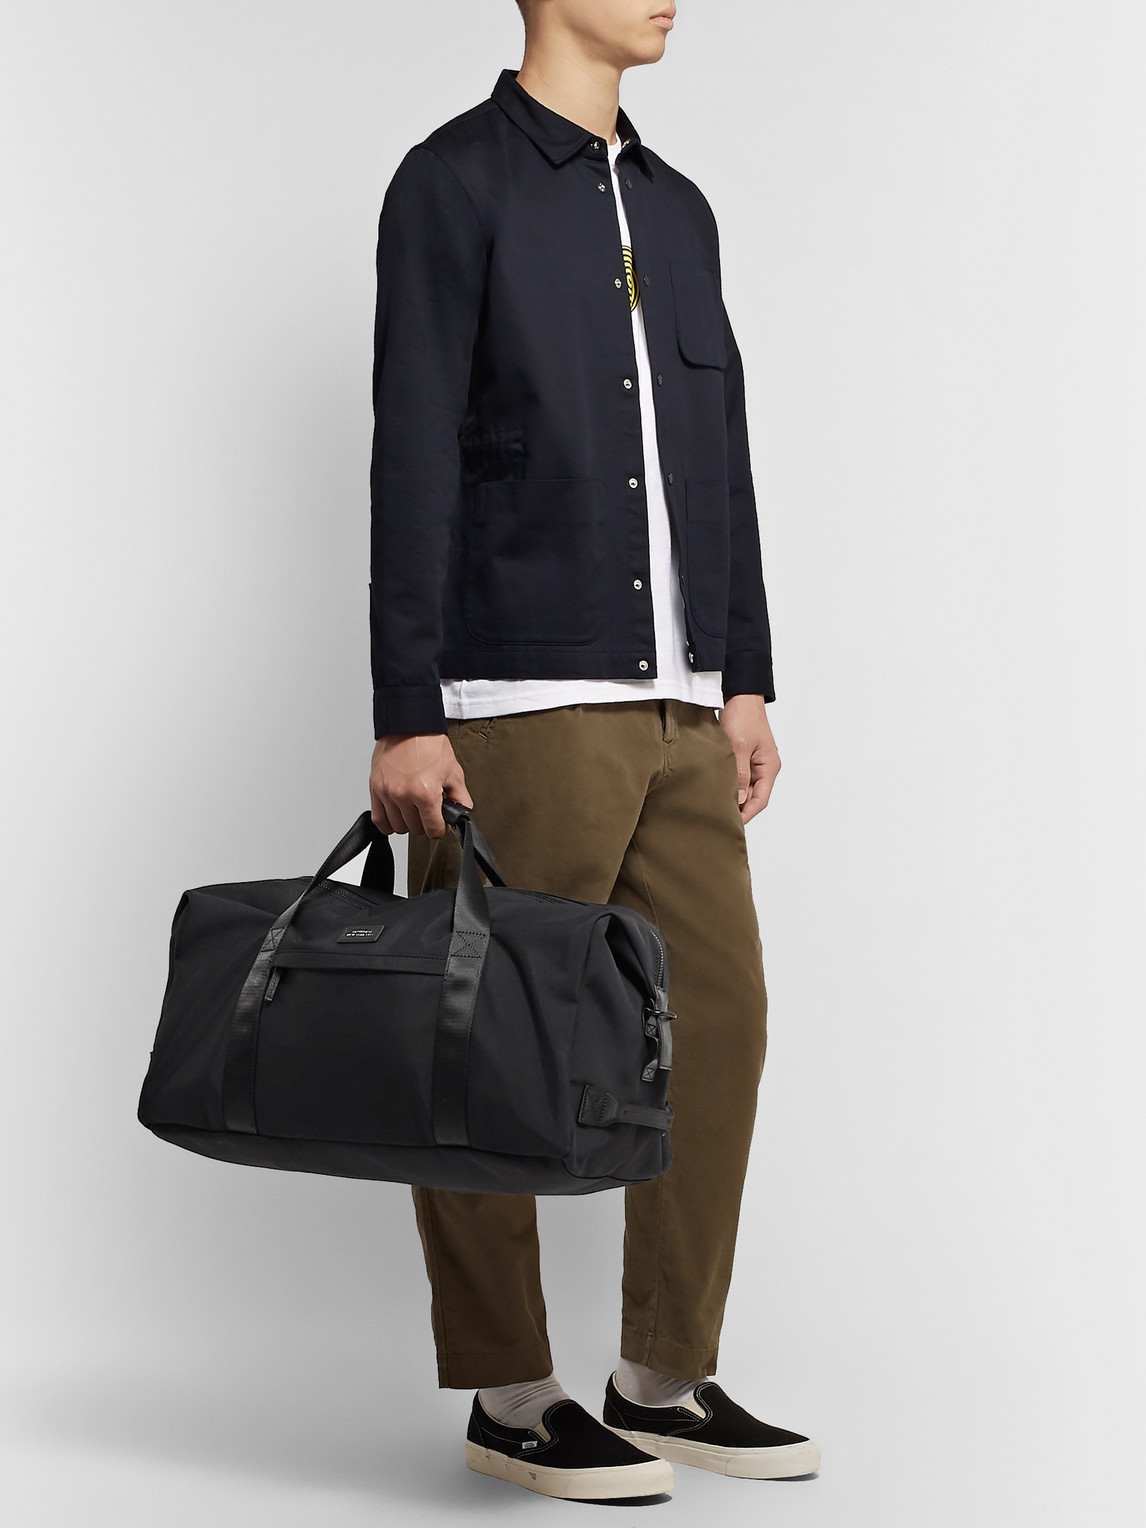 Saturdays Surf Nyc Bags NORFOLK NYLON HOLDALL